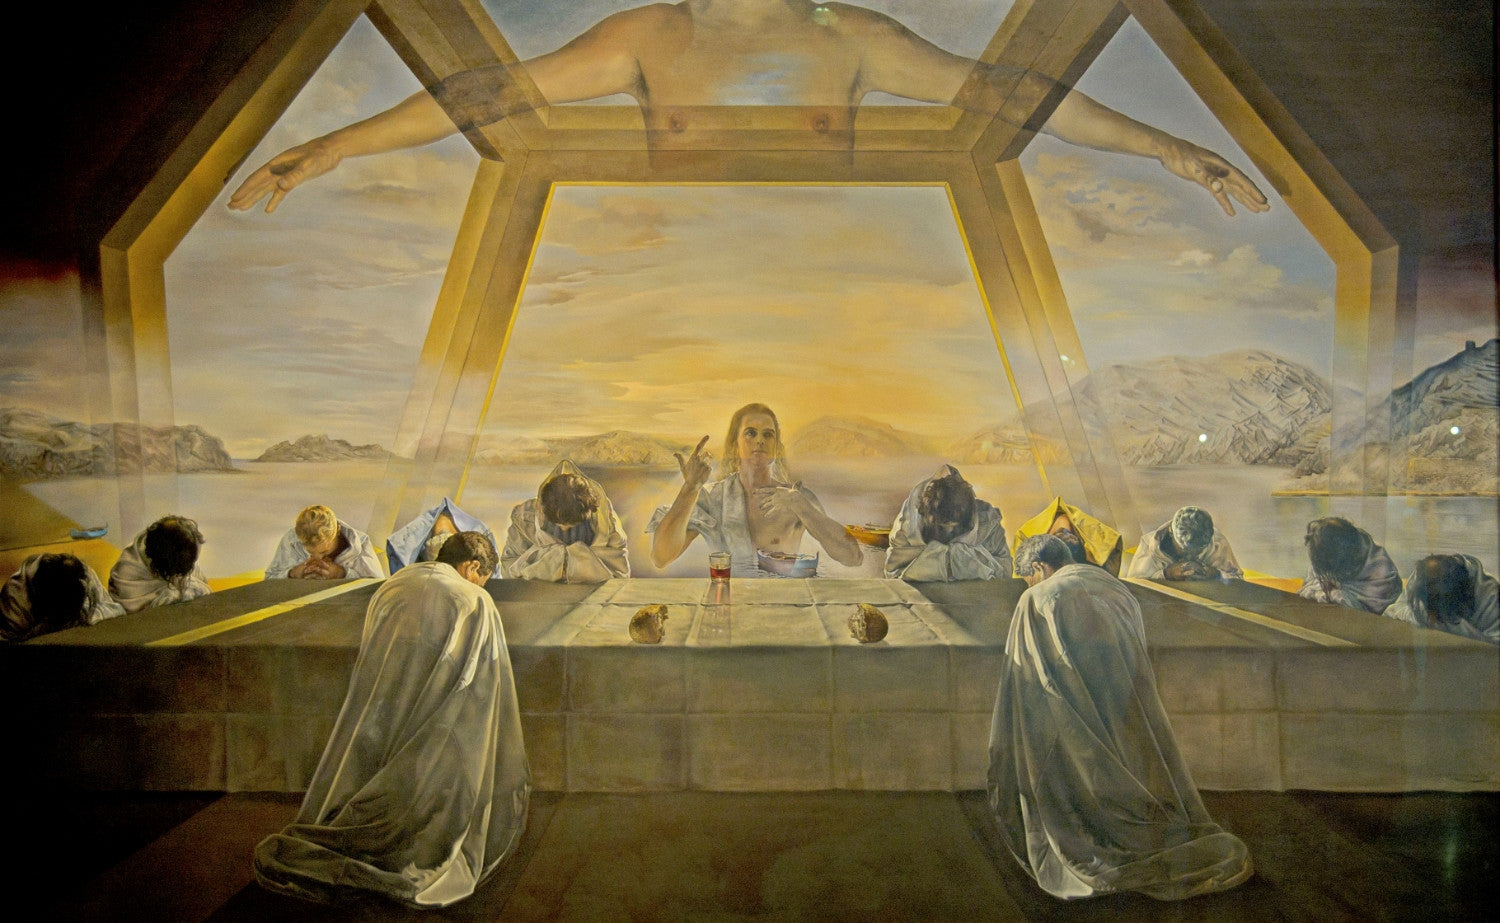 The Sacrament of The Last Supper - Large Art Prints by Salvador Dali ...